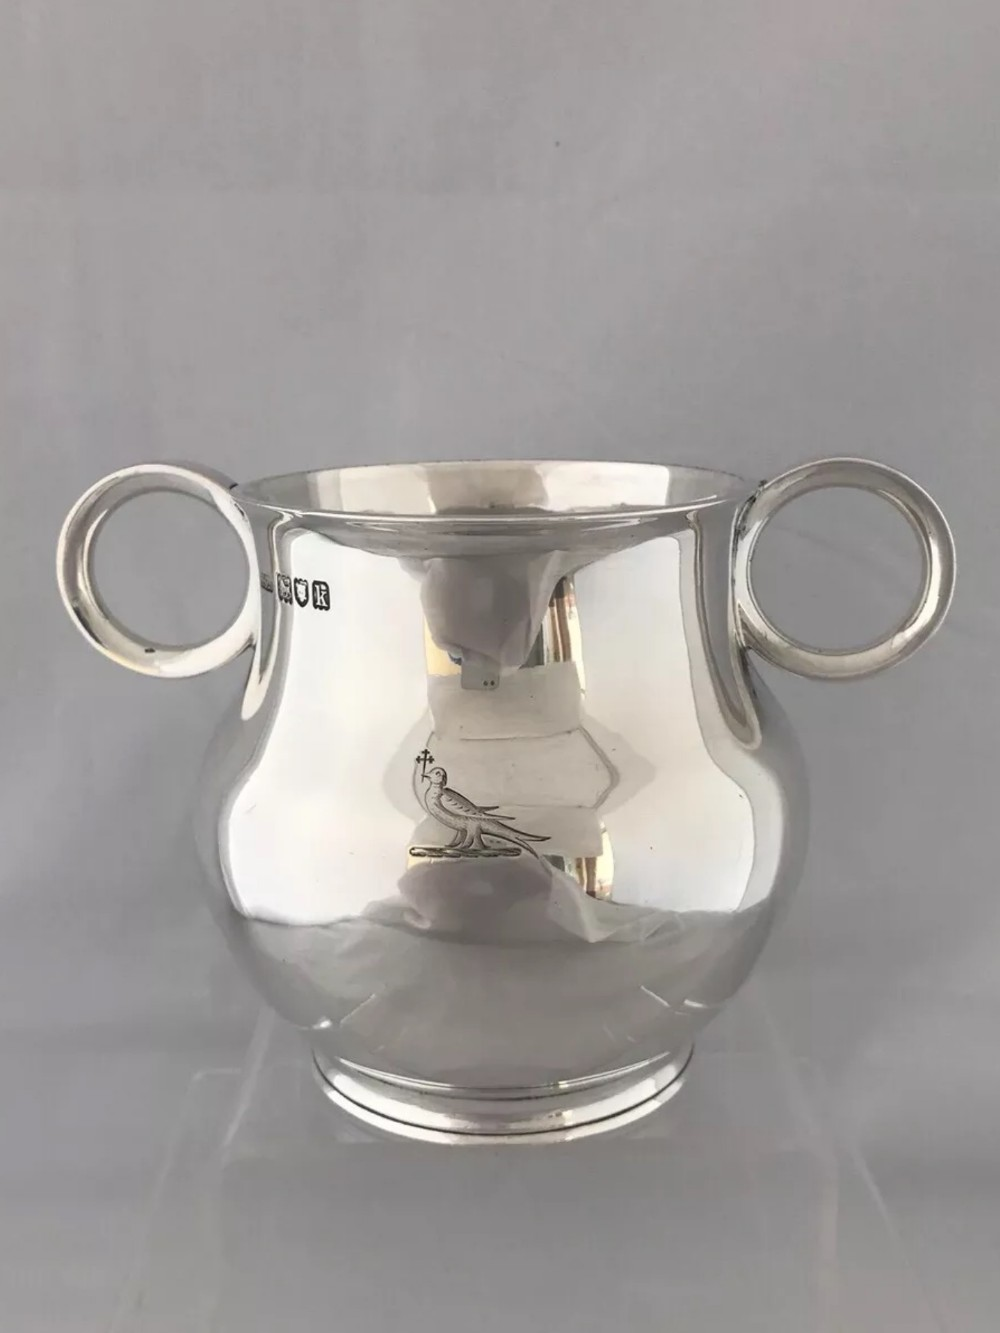 large and heavy edwardian ox eye handled cup 1905 london henry stratford